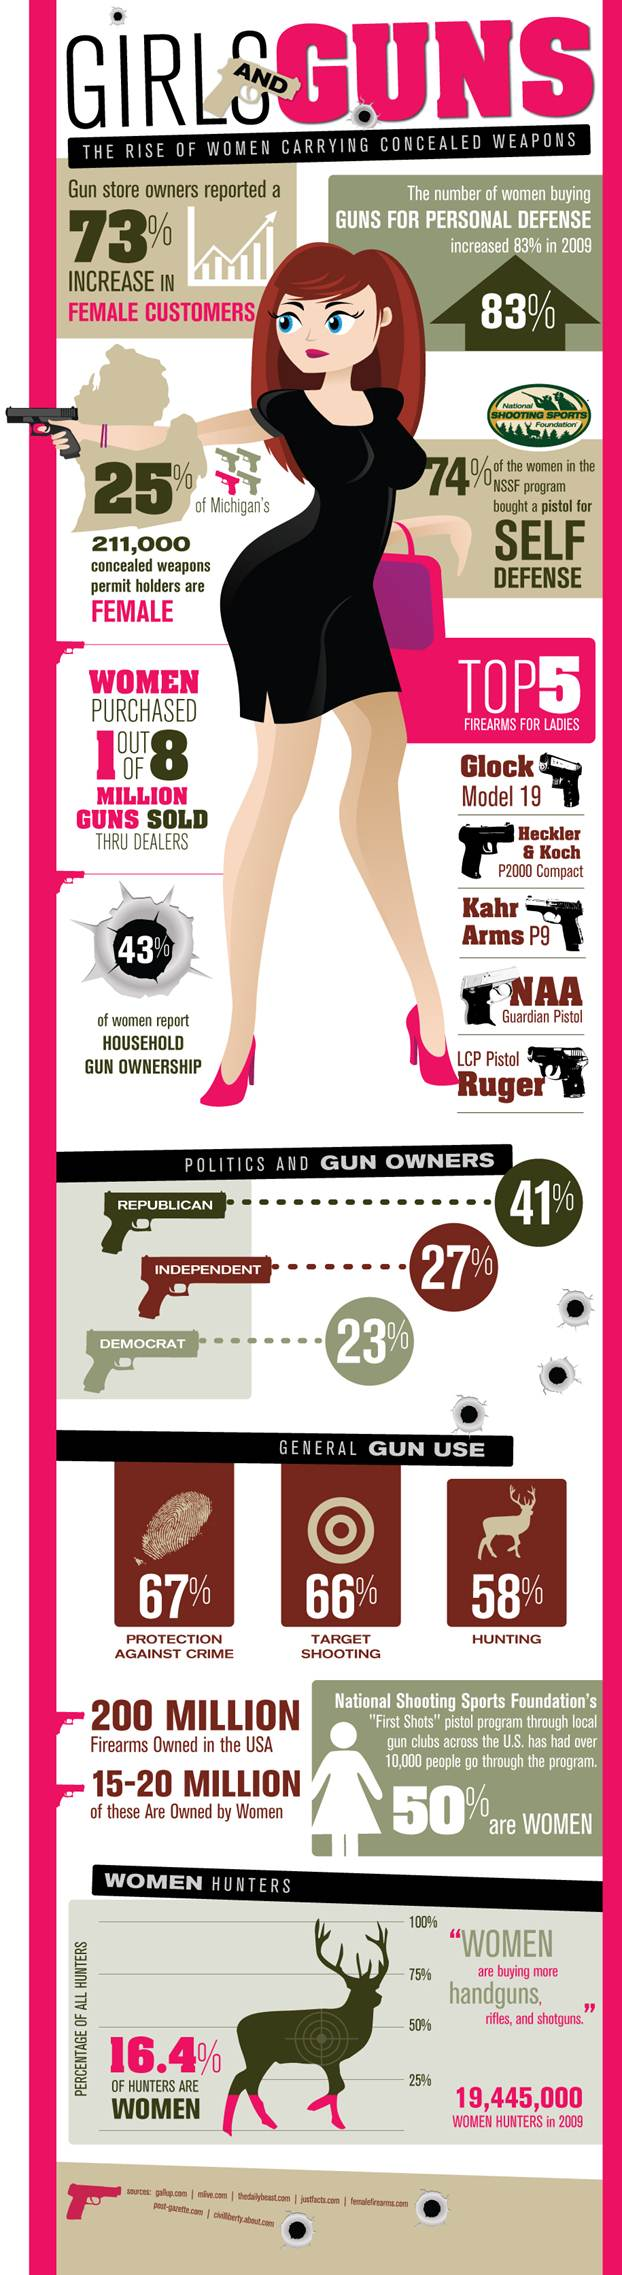 Girls and Guns - Women Carrying Concealed Weapons